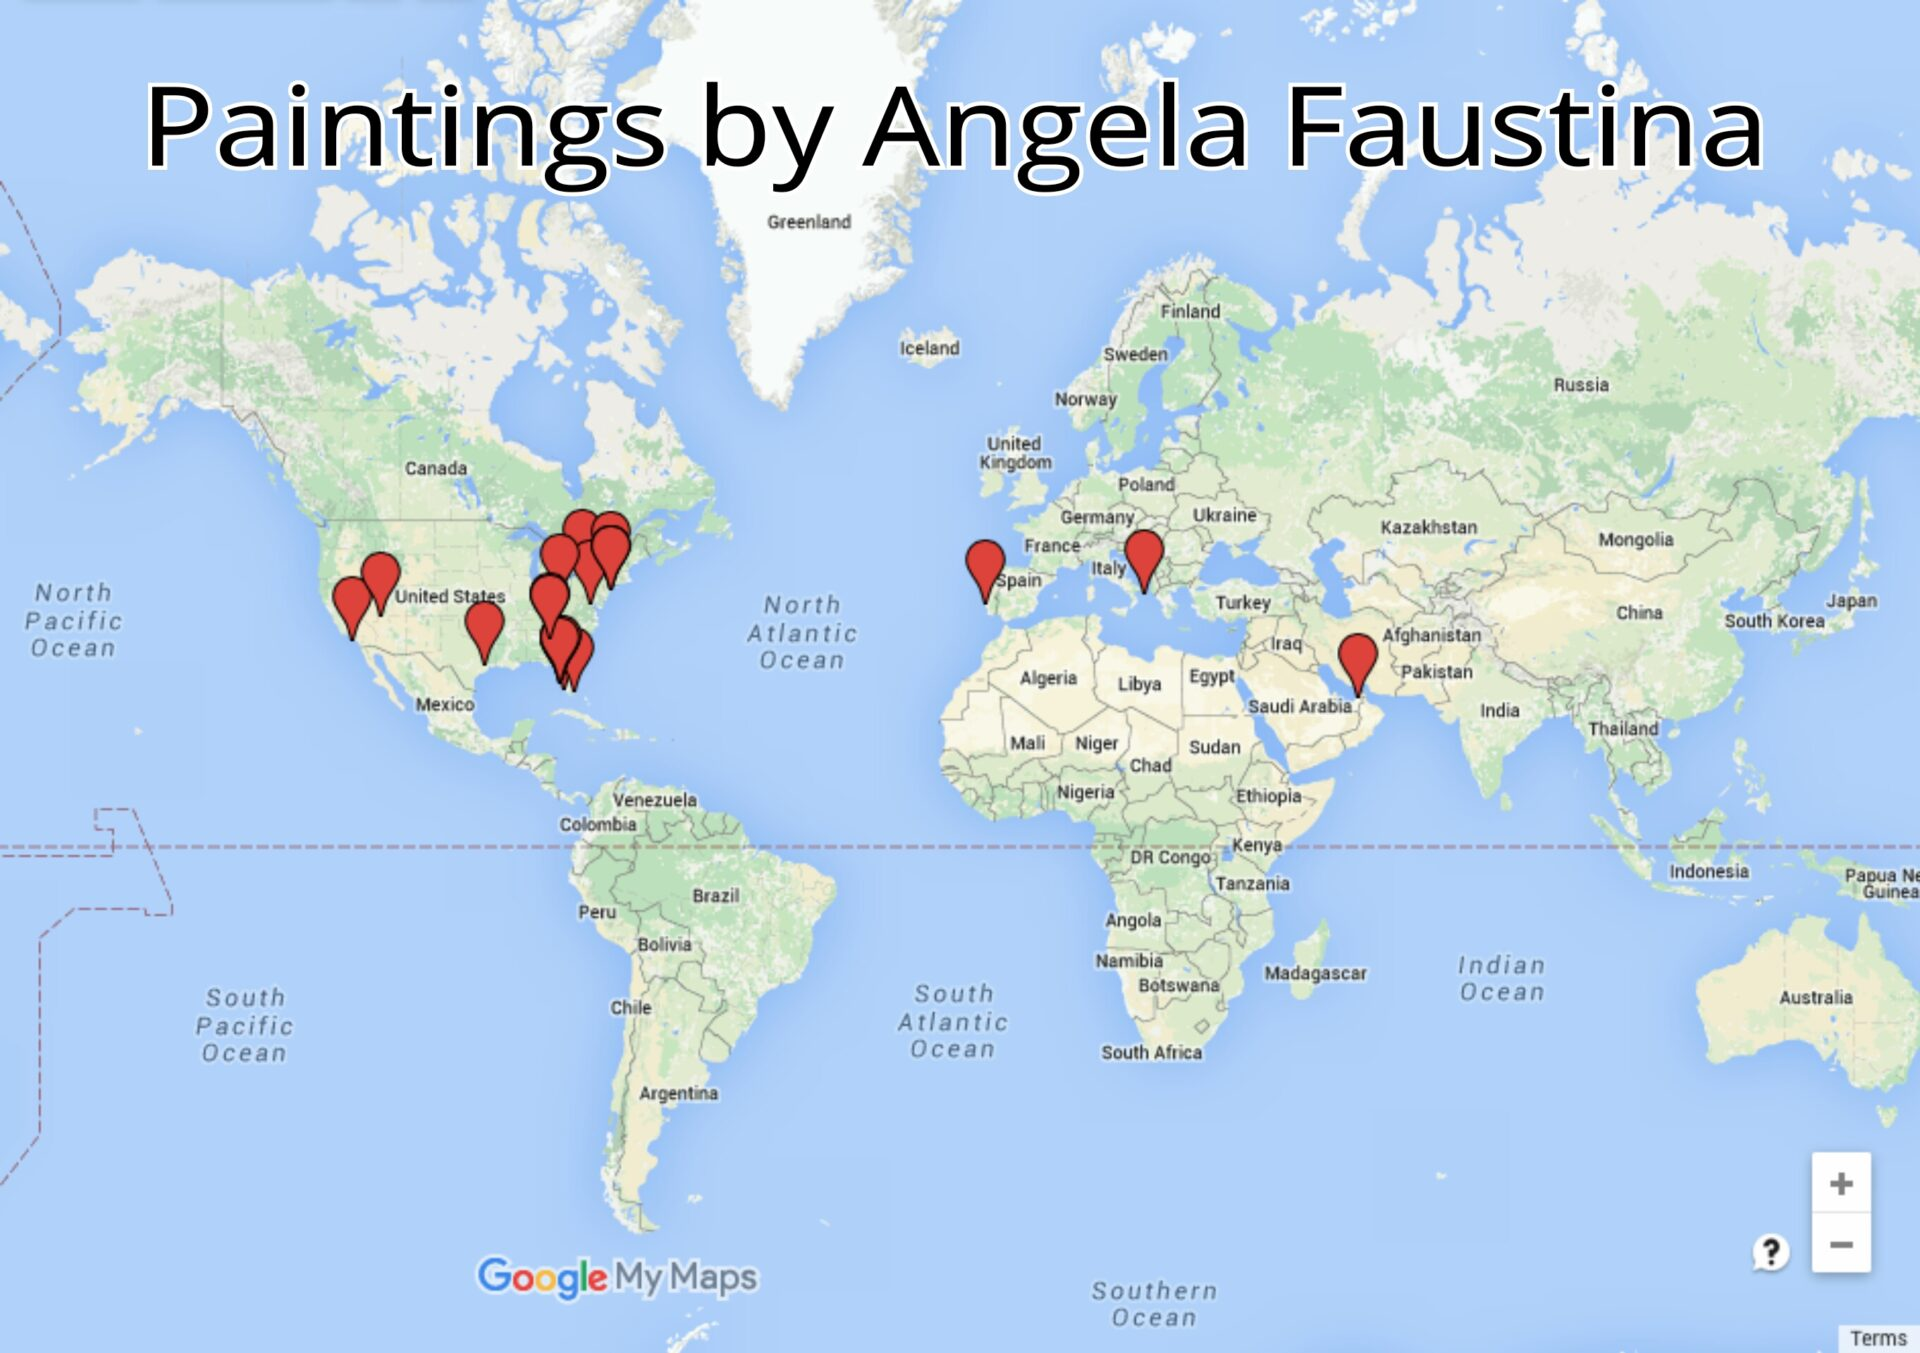 Angela Faustina's artwork sales around the world through 2015